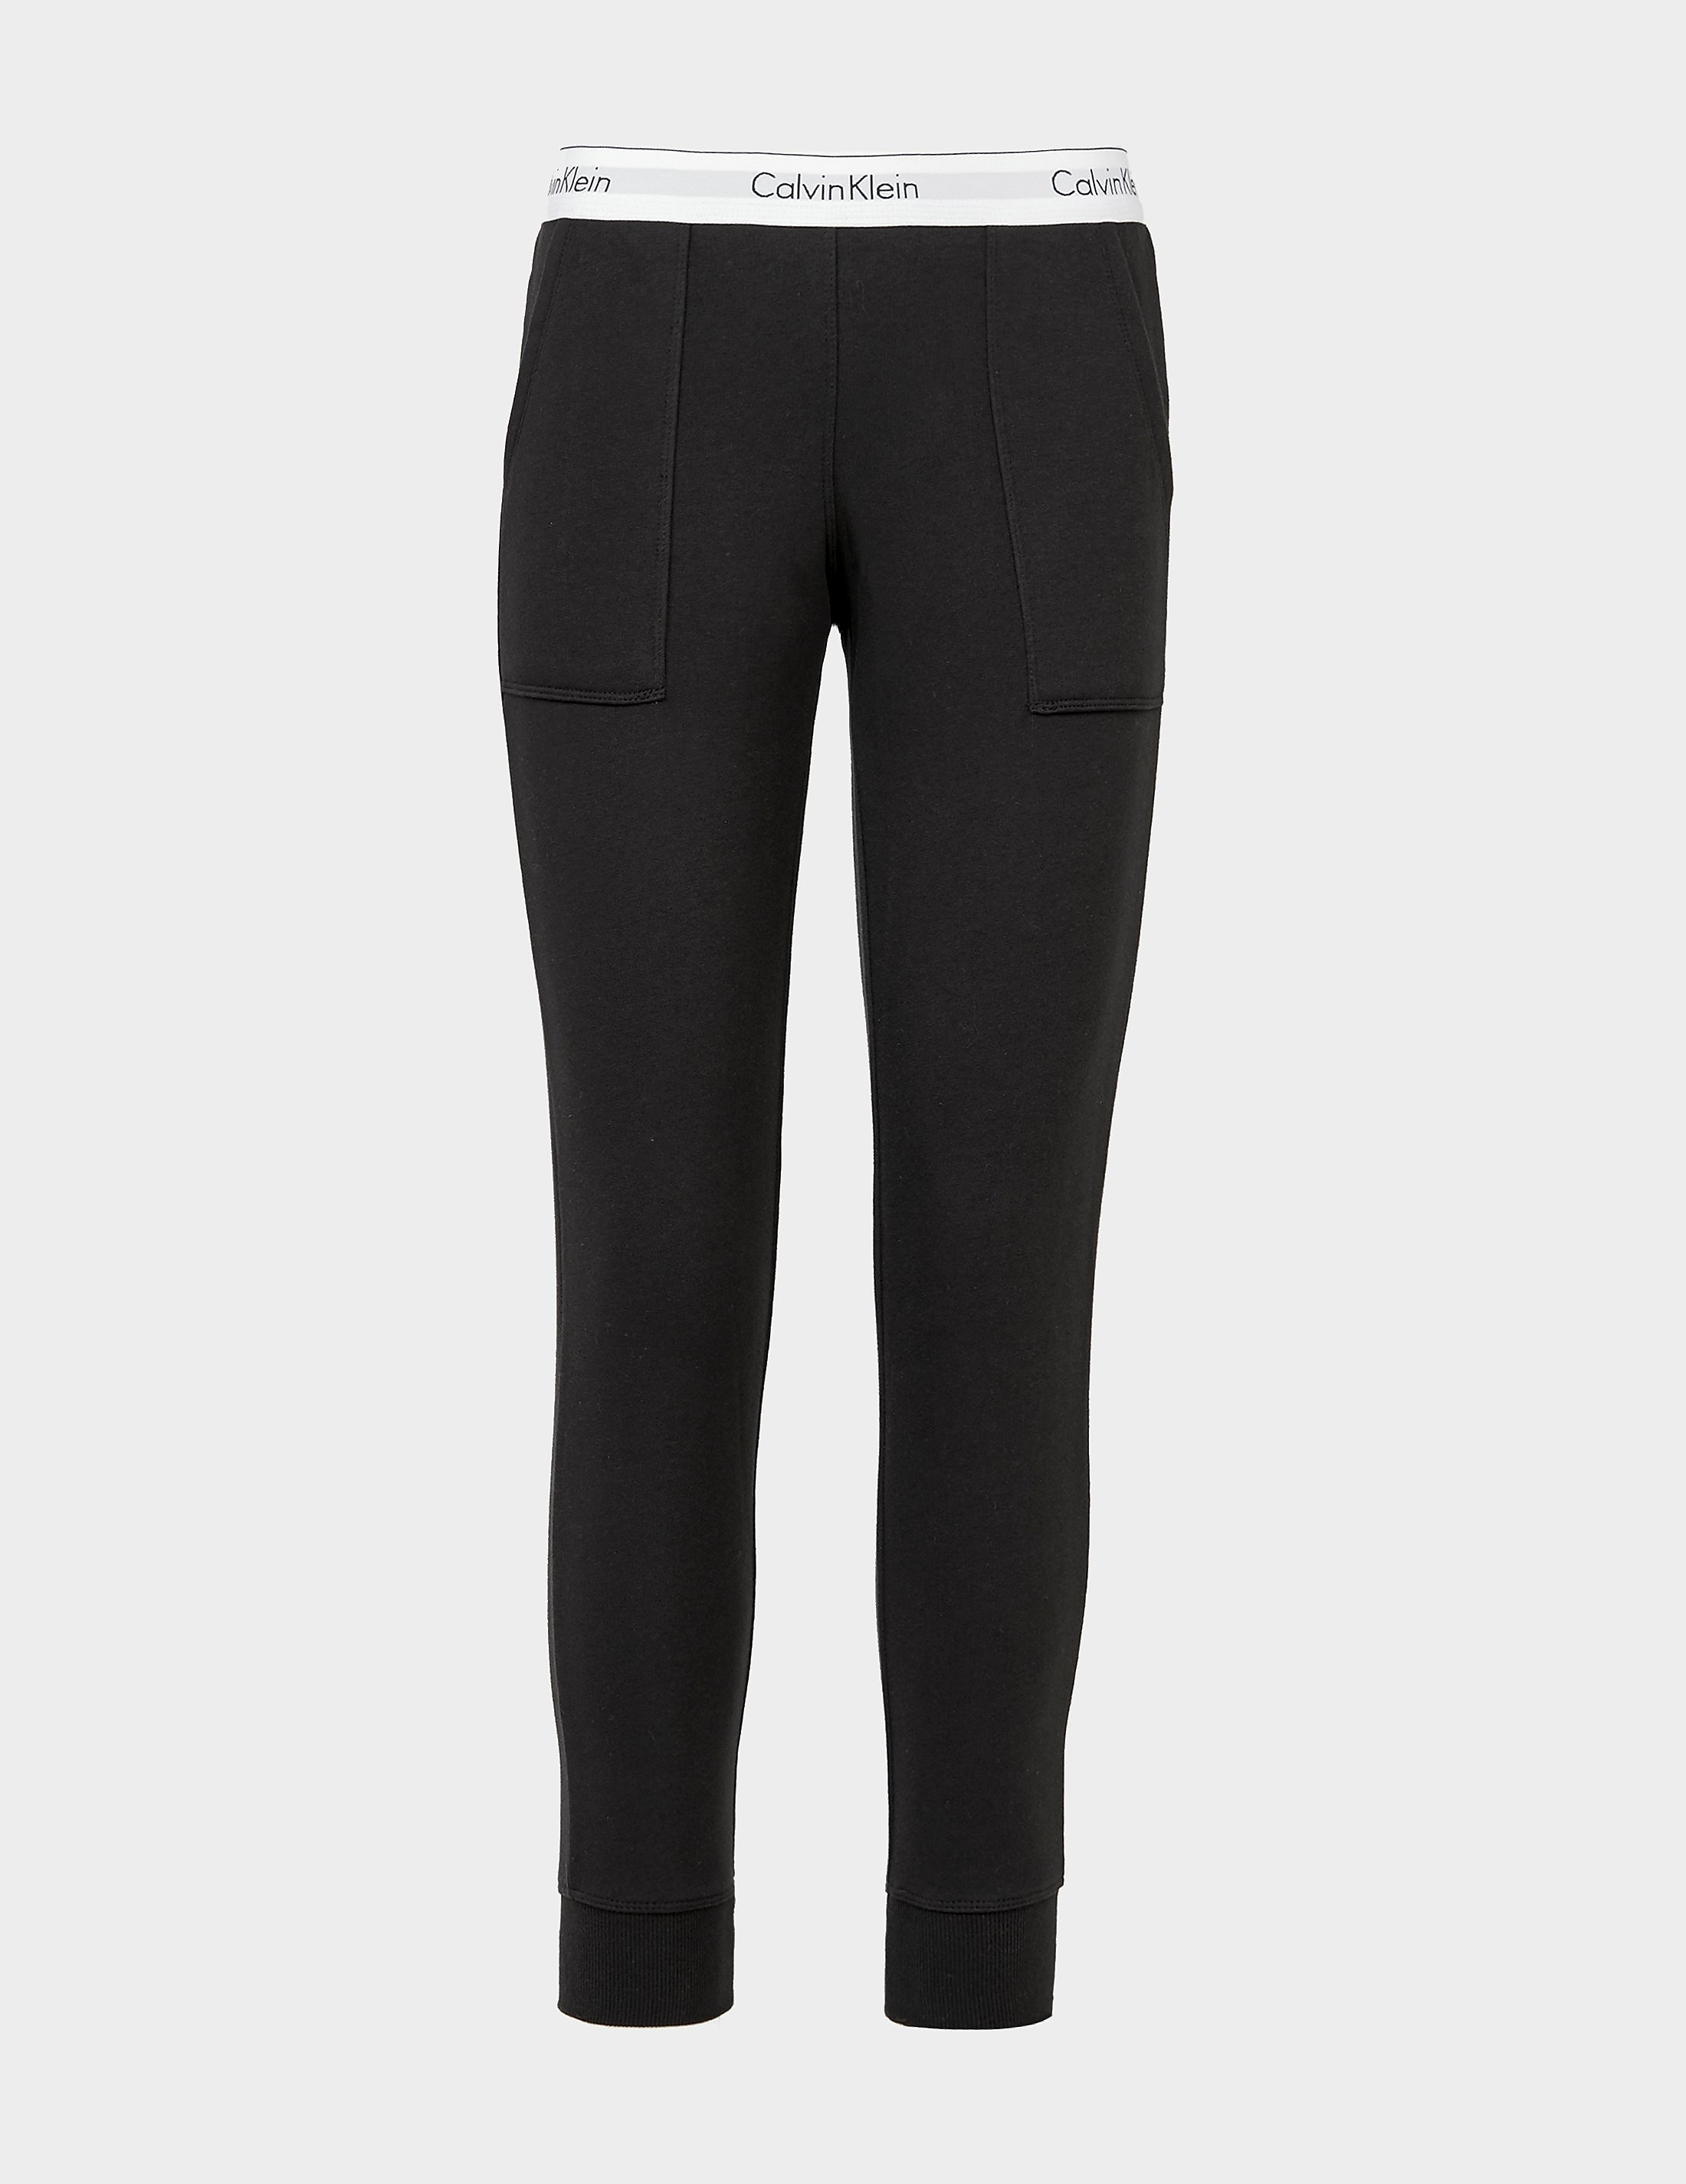 Calvin Klein Fleece Pants